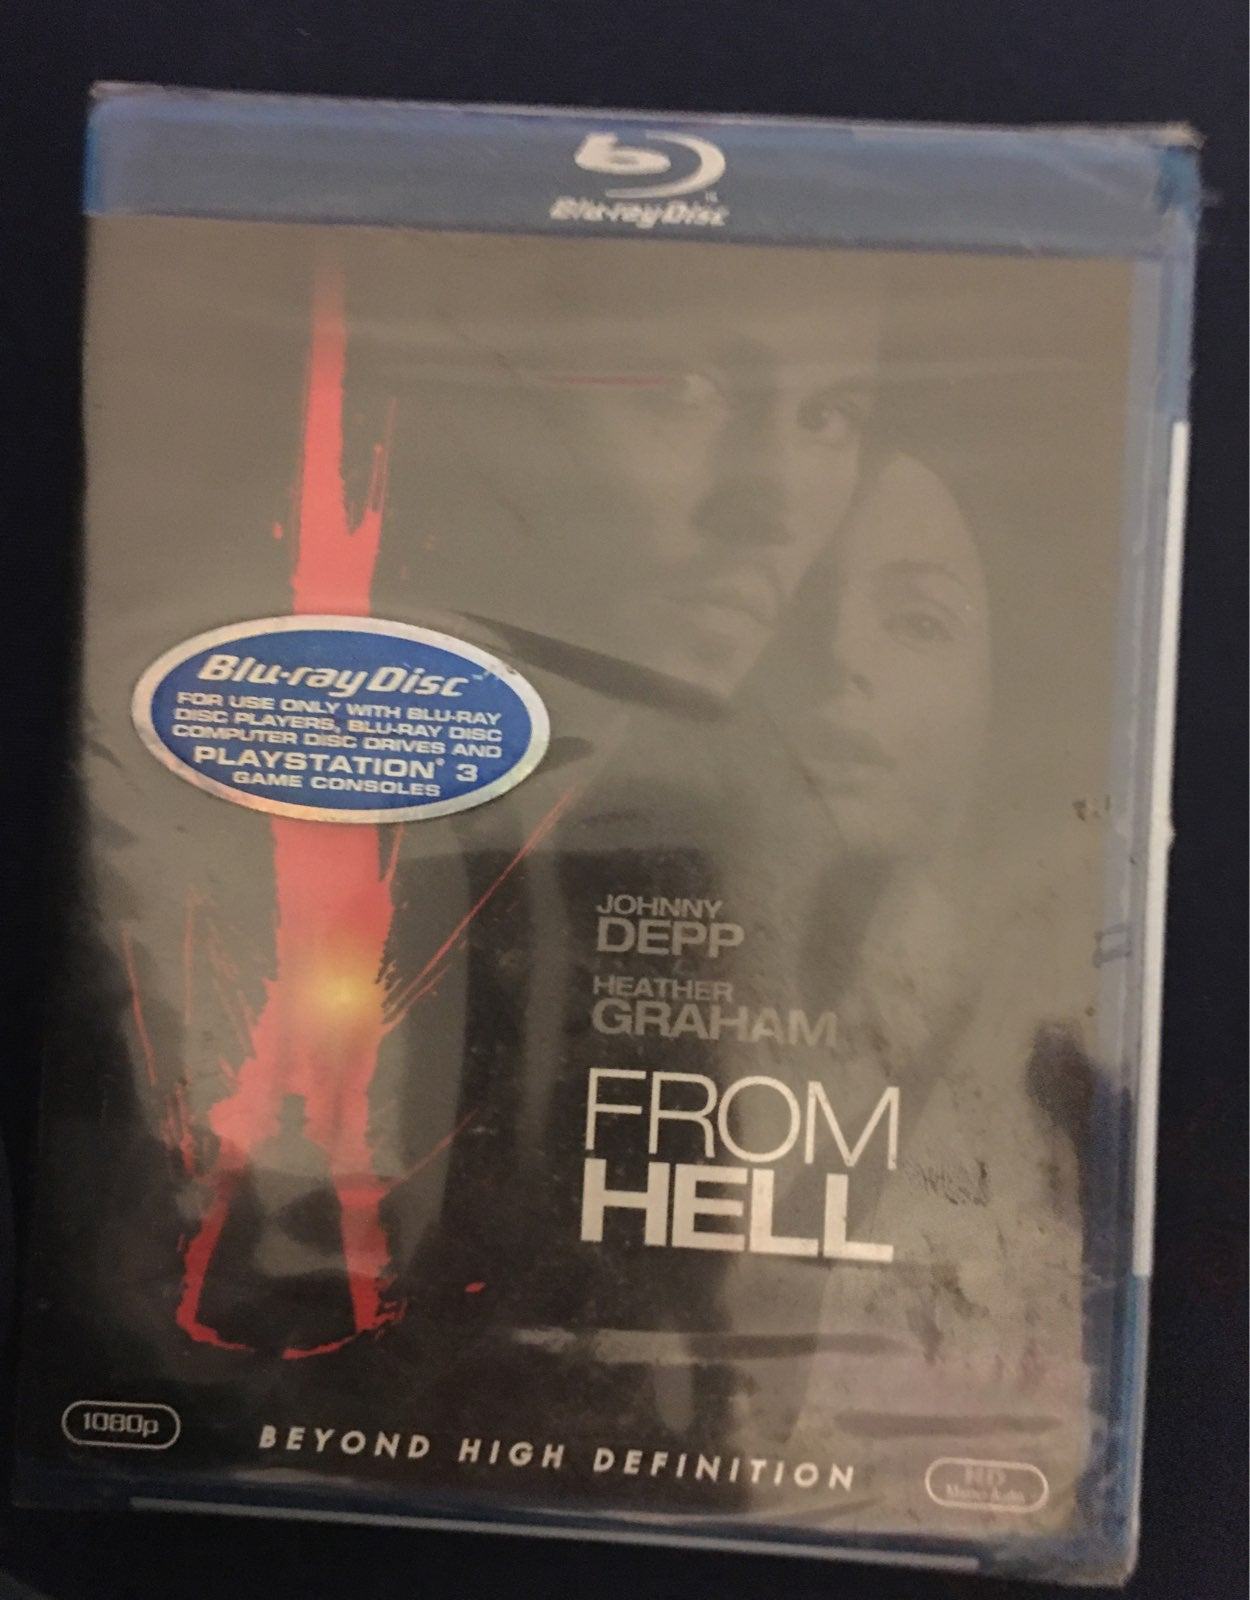 From Hell blu-ray disc. Beyond high defi